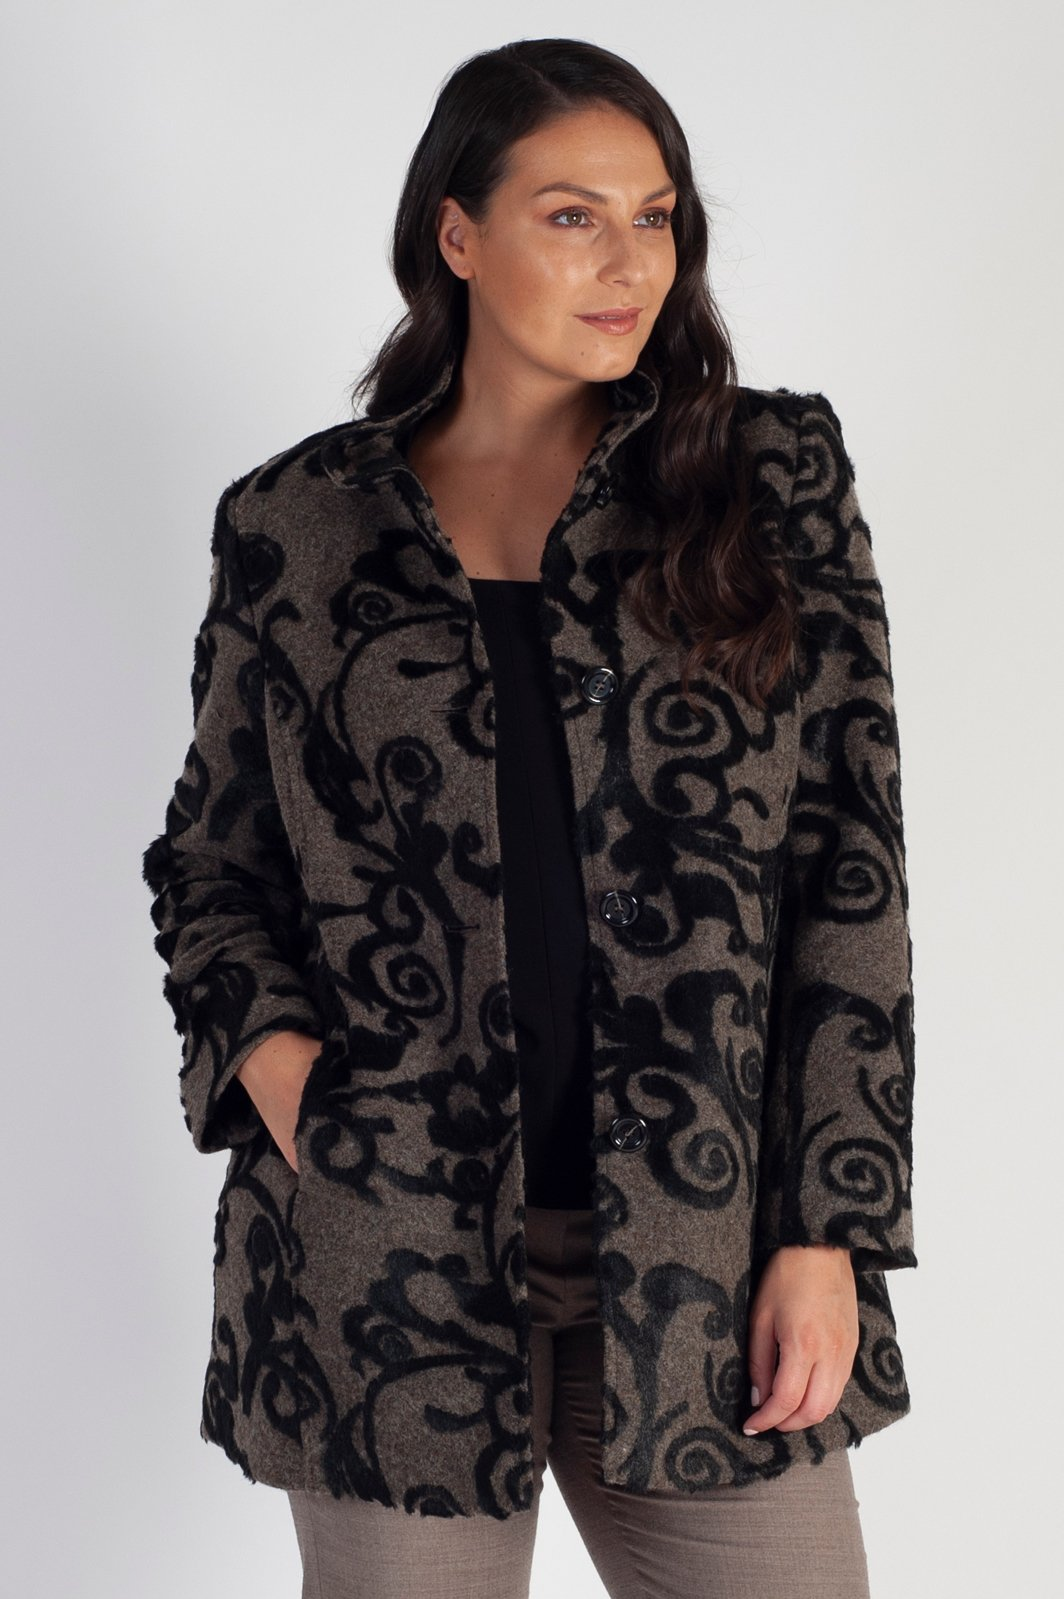 Eugen Klein Taupe/Black Coat With Raised Cut Fur Scroll Design